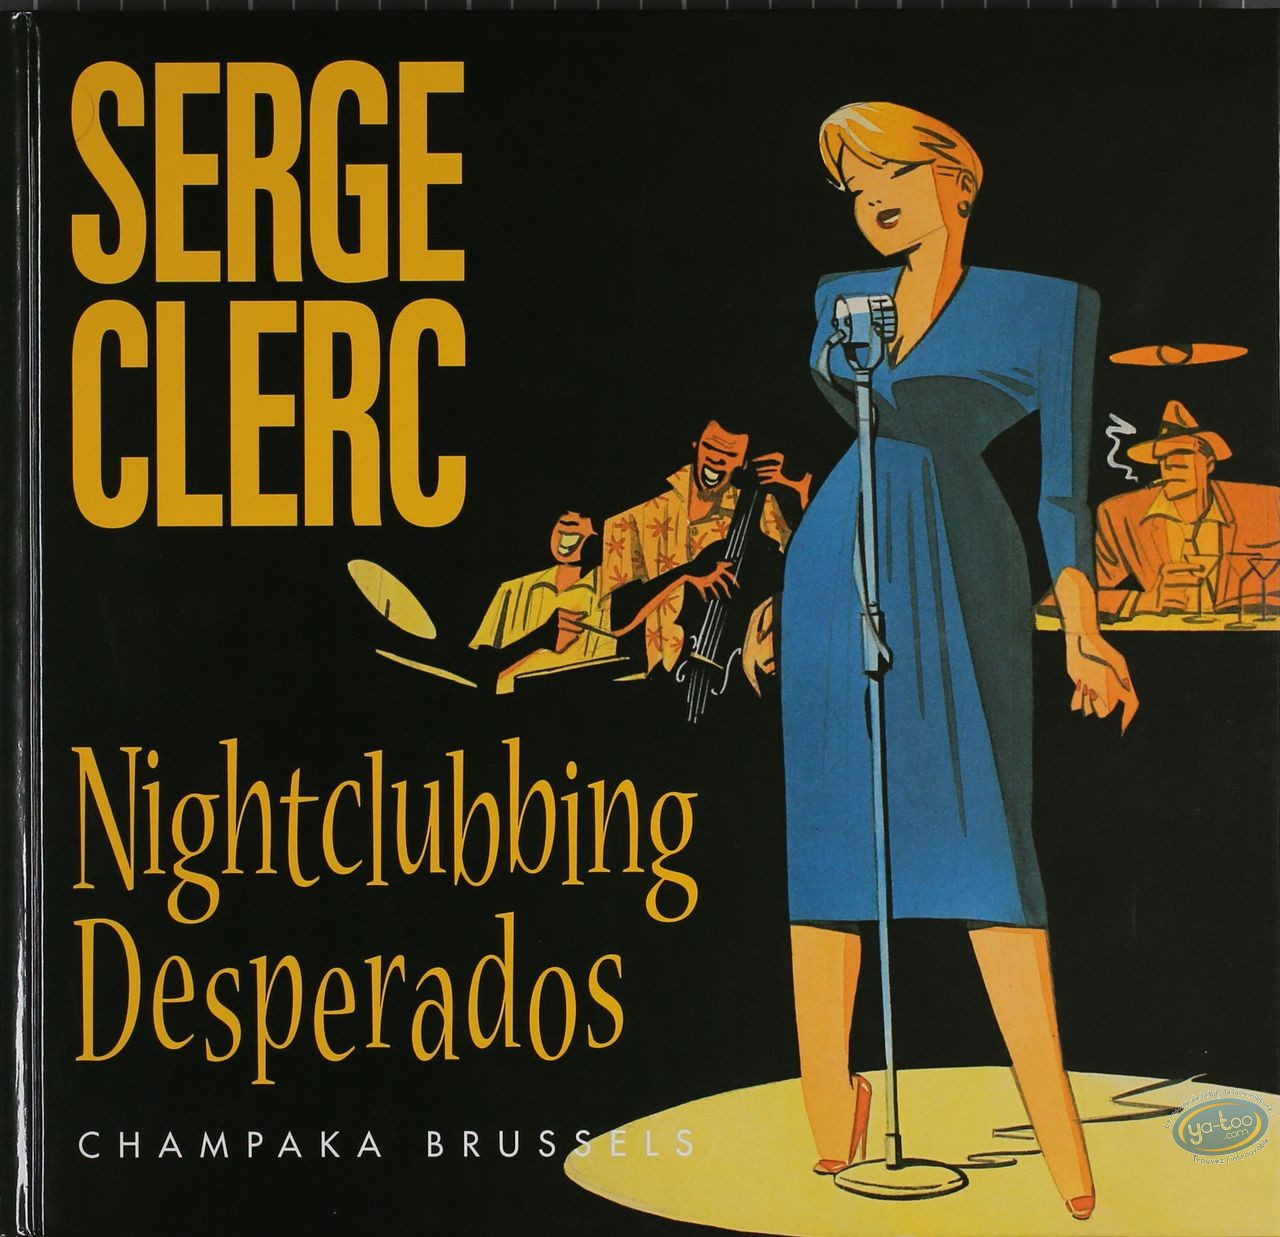 Album, Nightclubbing Desperados